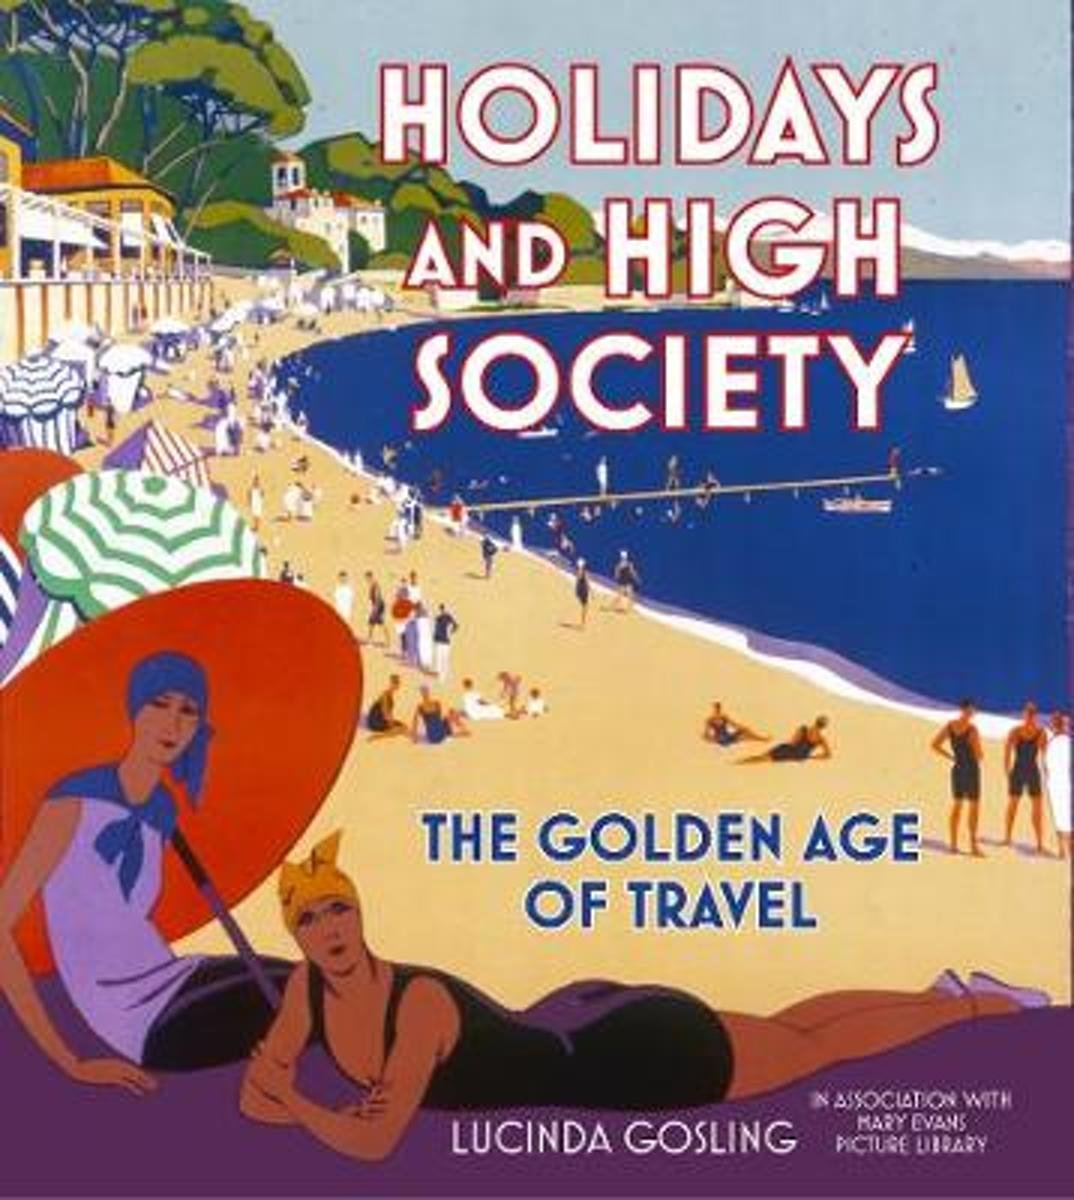 Holidays and High Society 9780750990080 Lucinda Gosling The History Press Ltd   Historische reisgidsen, Reisverhalen Wereld als geheel